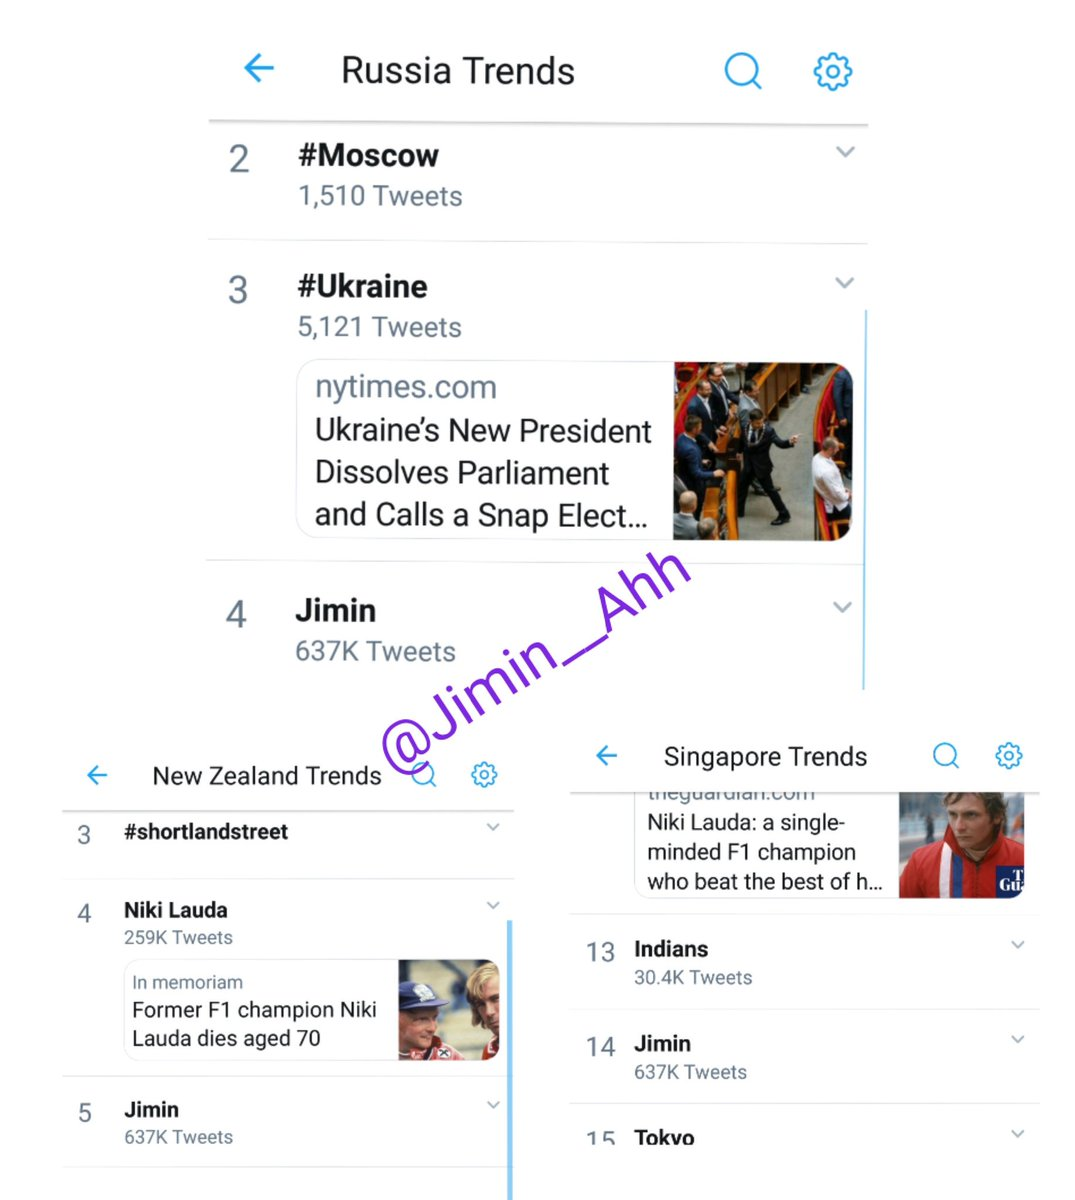 Jimin is now trending...   #4 Russia #5 New Zealand #14 Singapore   May 21, 2019 10:42PM (kst time) #JIMIN<br>http://pic.twitter.com/pARcxt0ofK